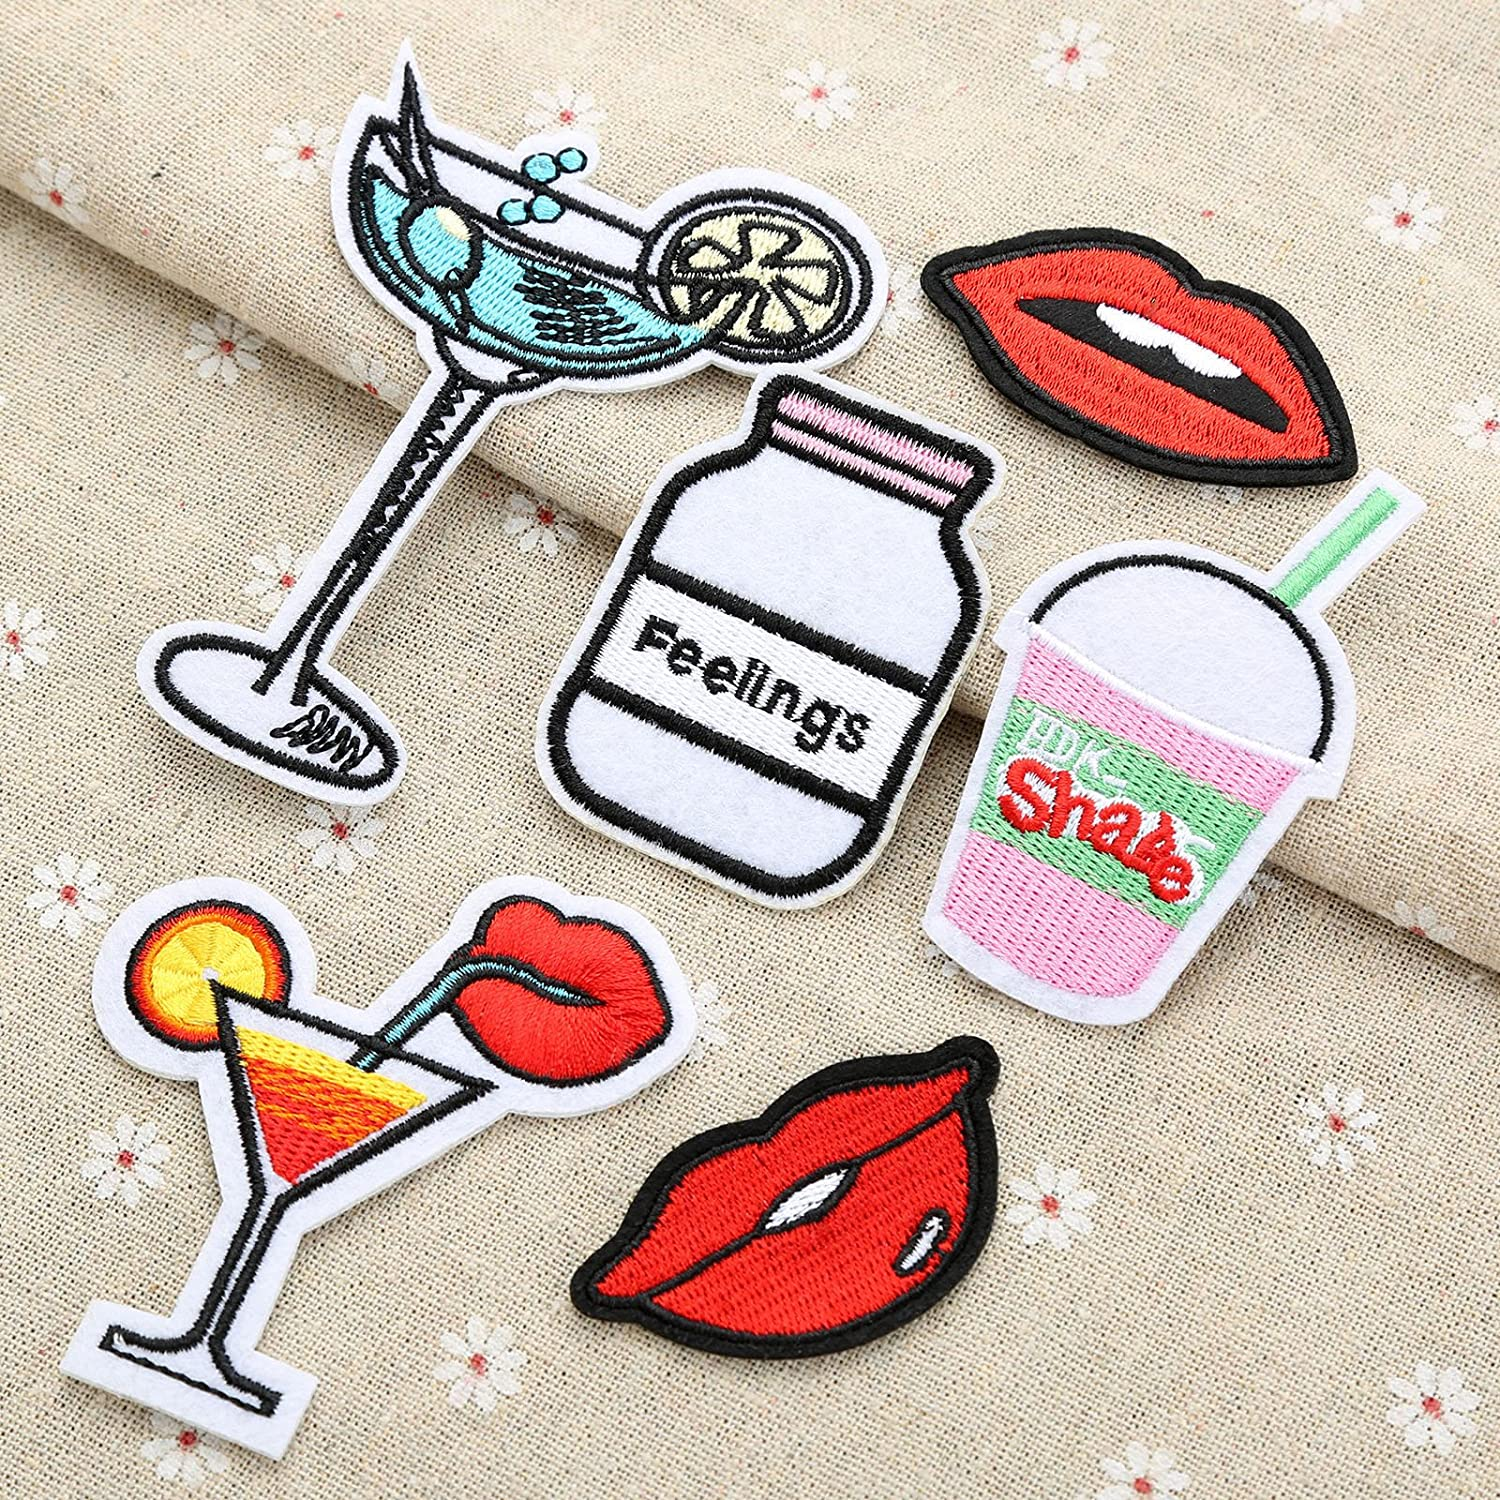 Embroidery Sew Iron On Patch Badge Bag Clothes Fabric Applique DIY